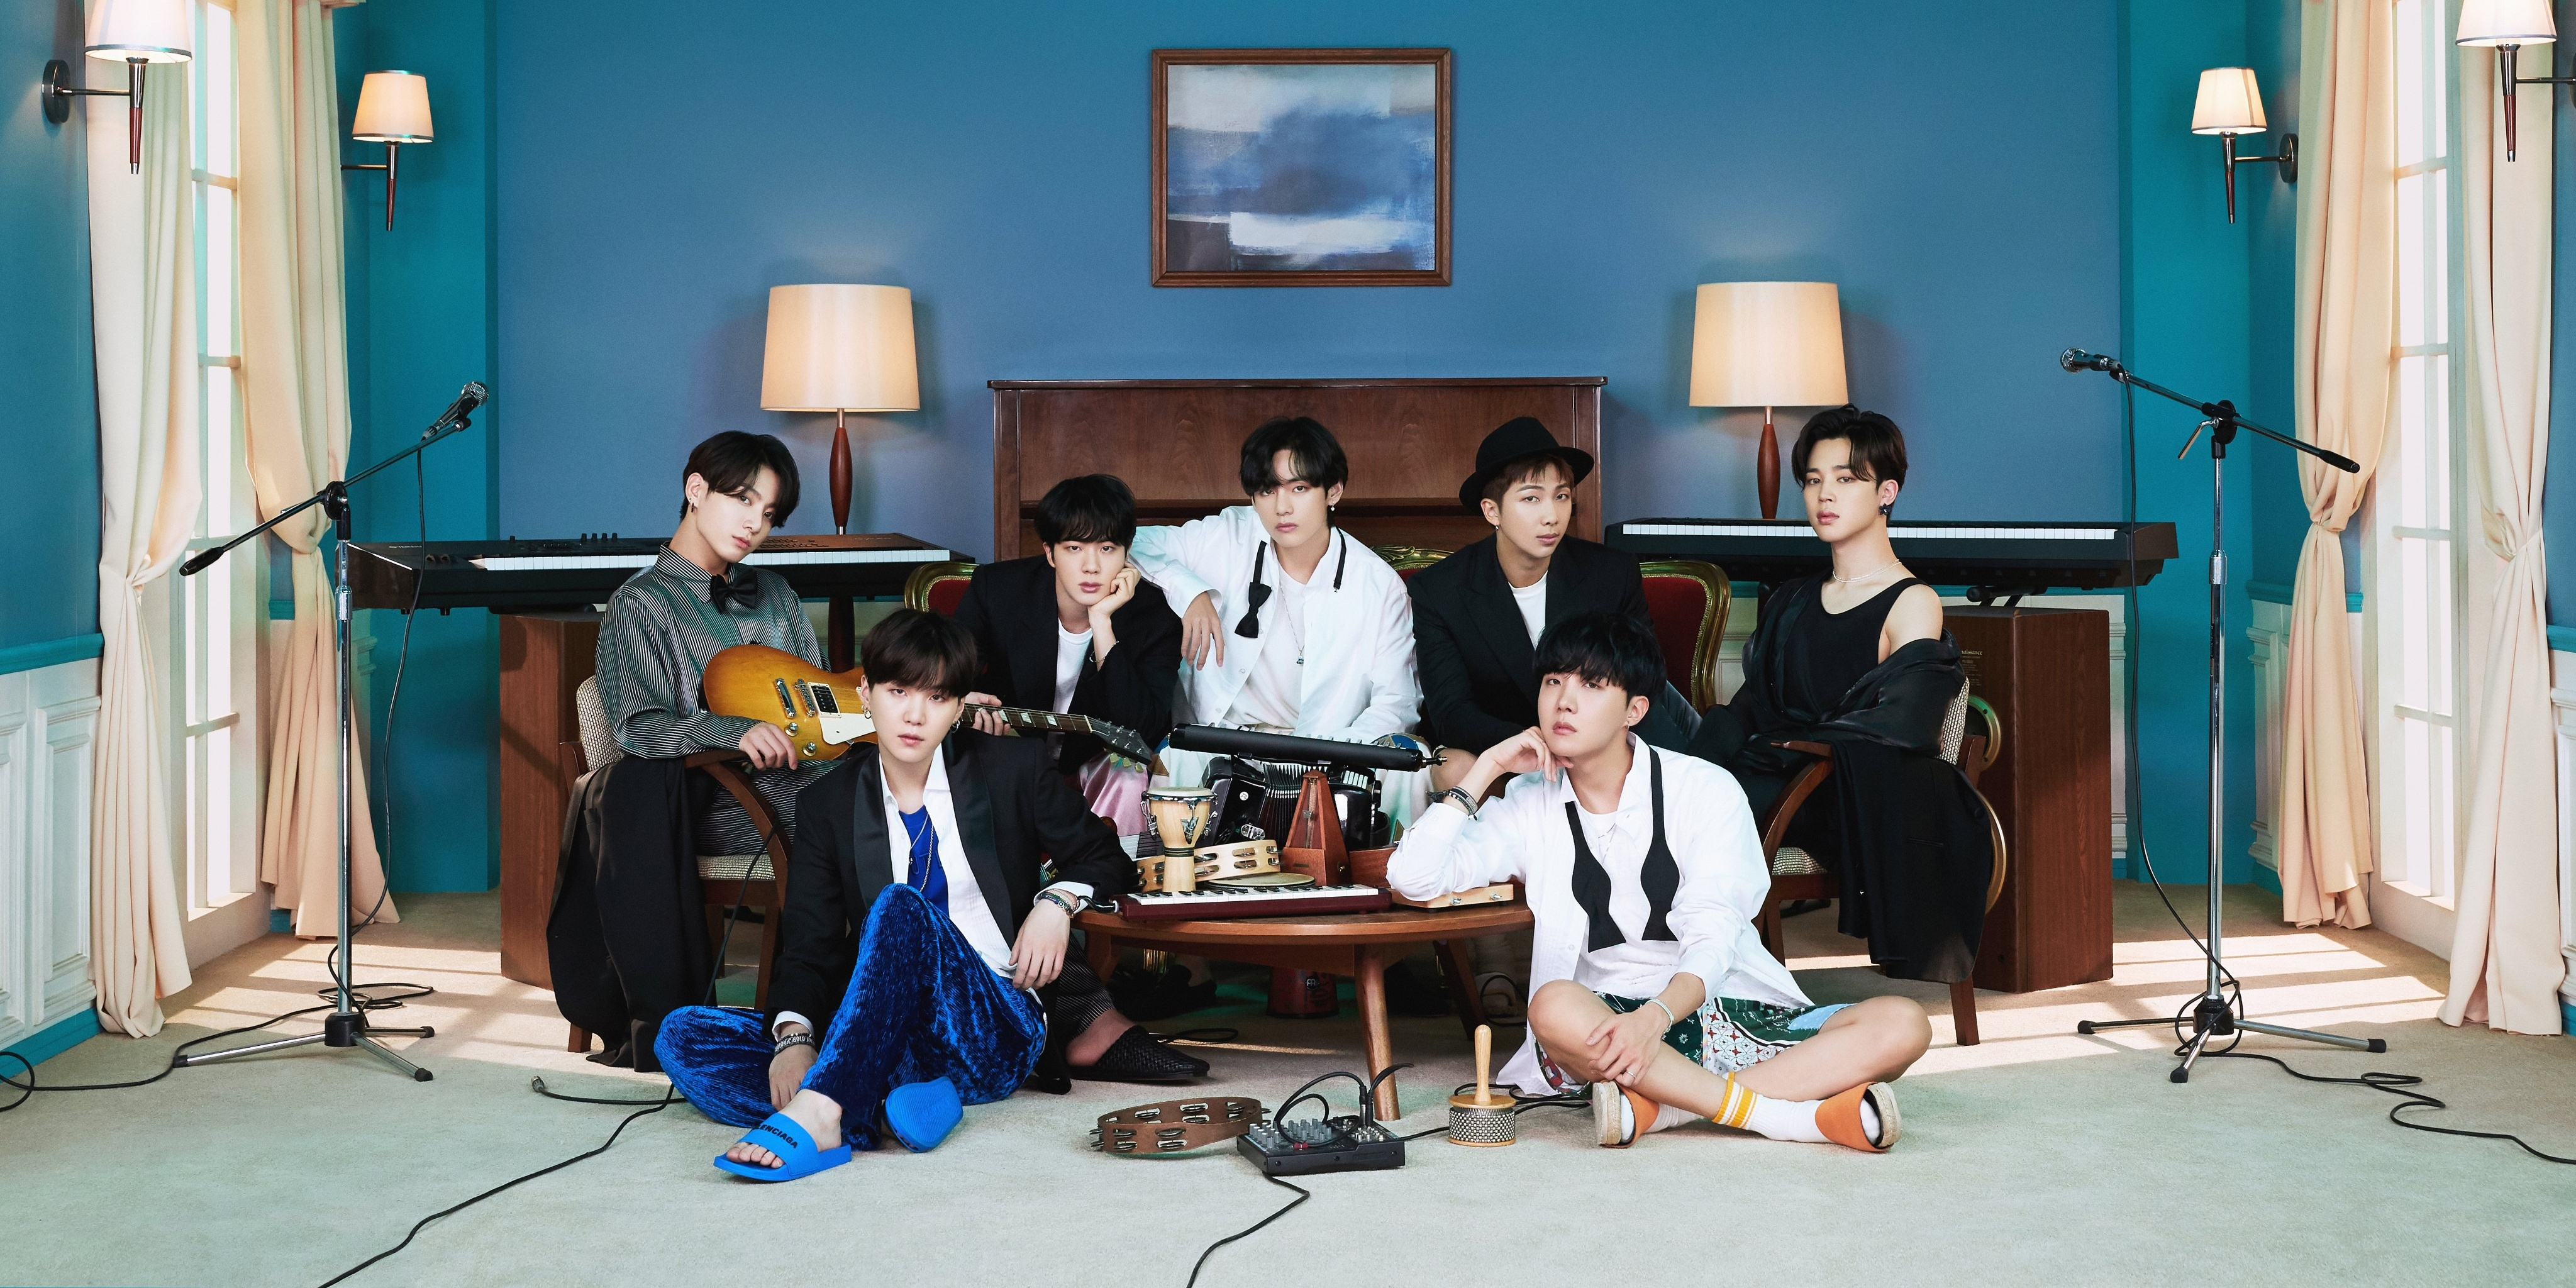 BE, the new BTS album, drops this November, here's how to preorder